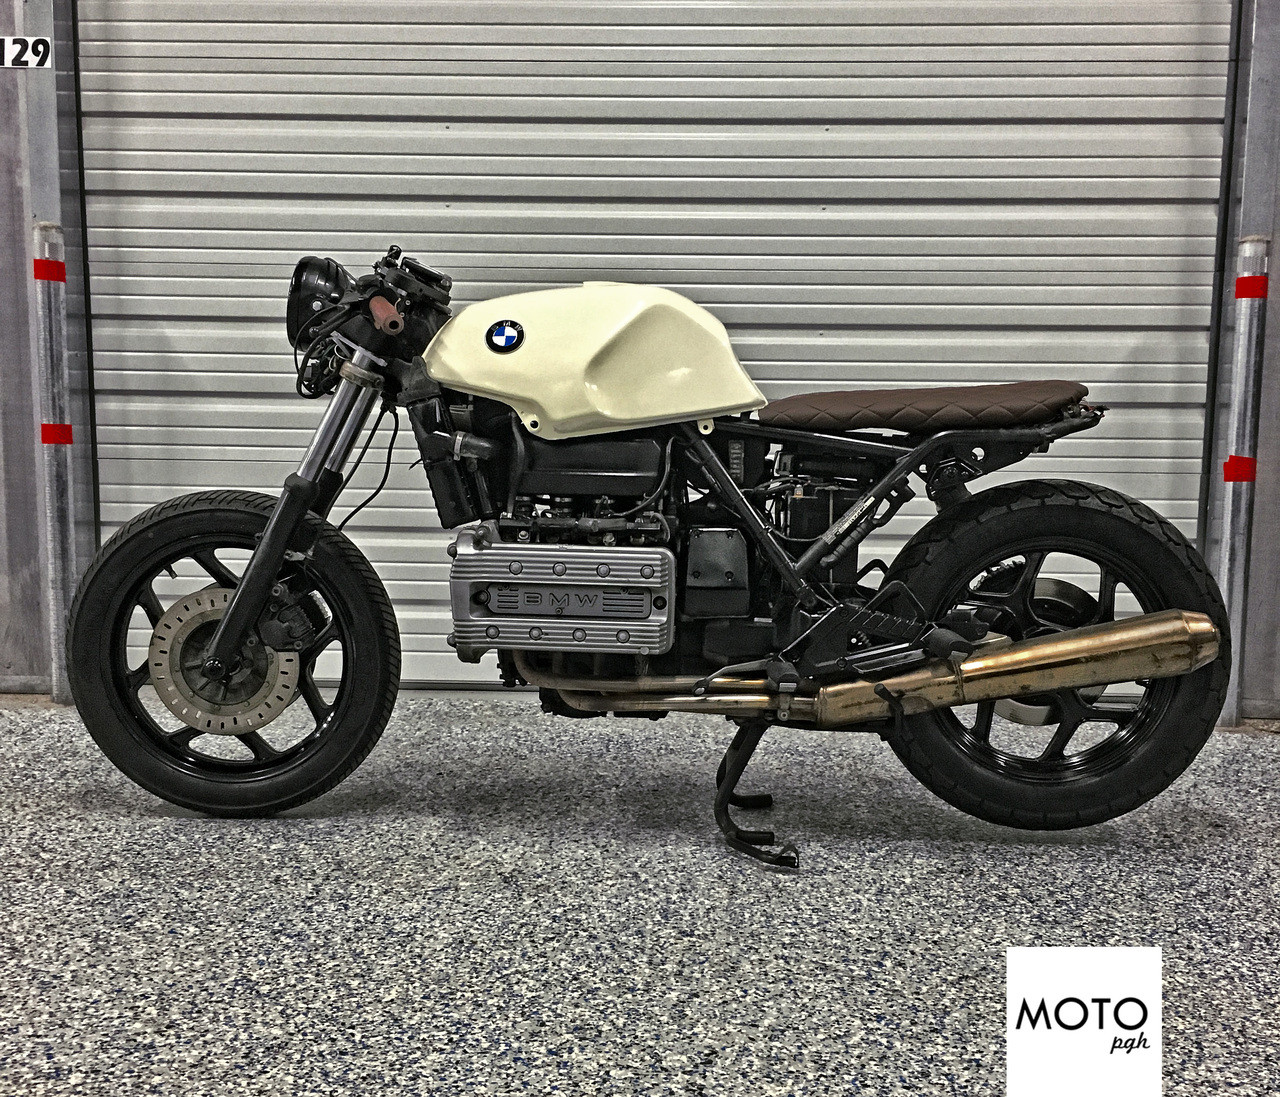 sold 973 bmw k100 the brick brat cafe racer moto pgh. Black Bedroom Furniture Sets. Home Design Ideas